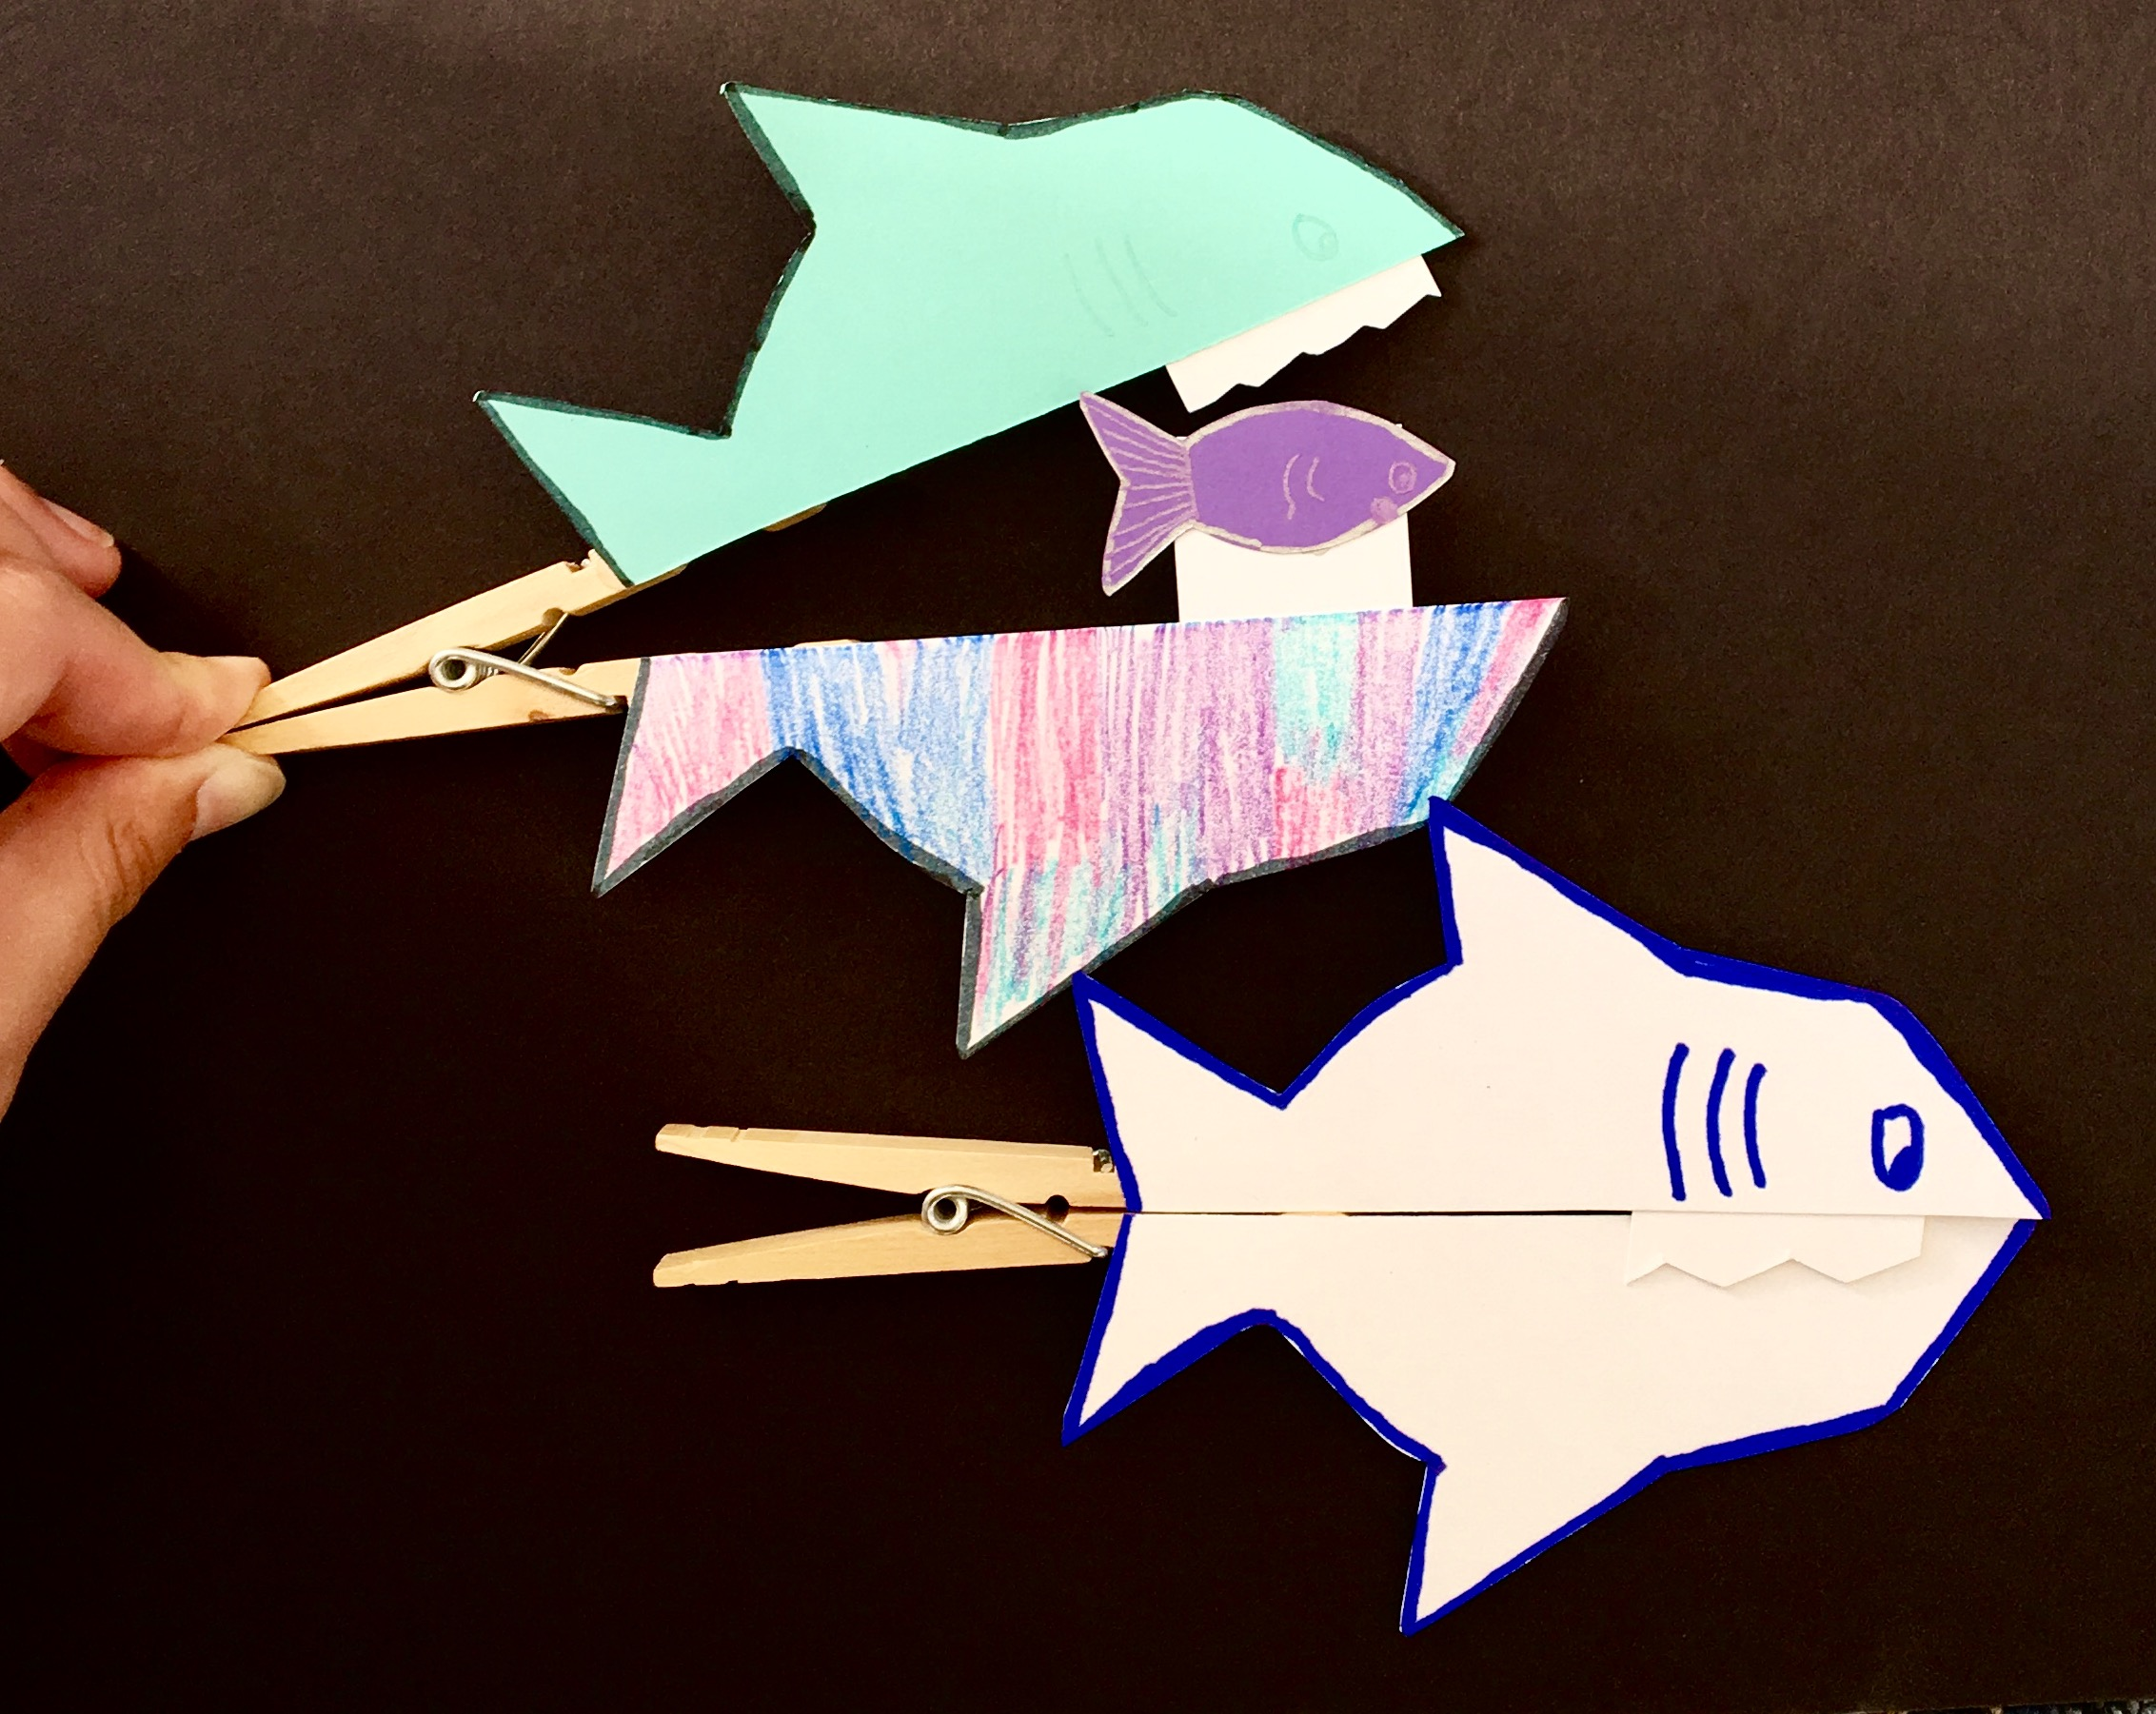 Clothespin Sharks by Chastity, age 12